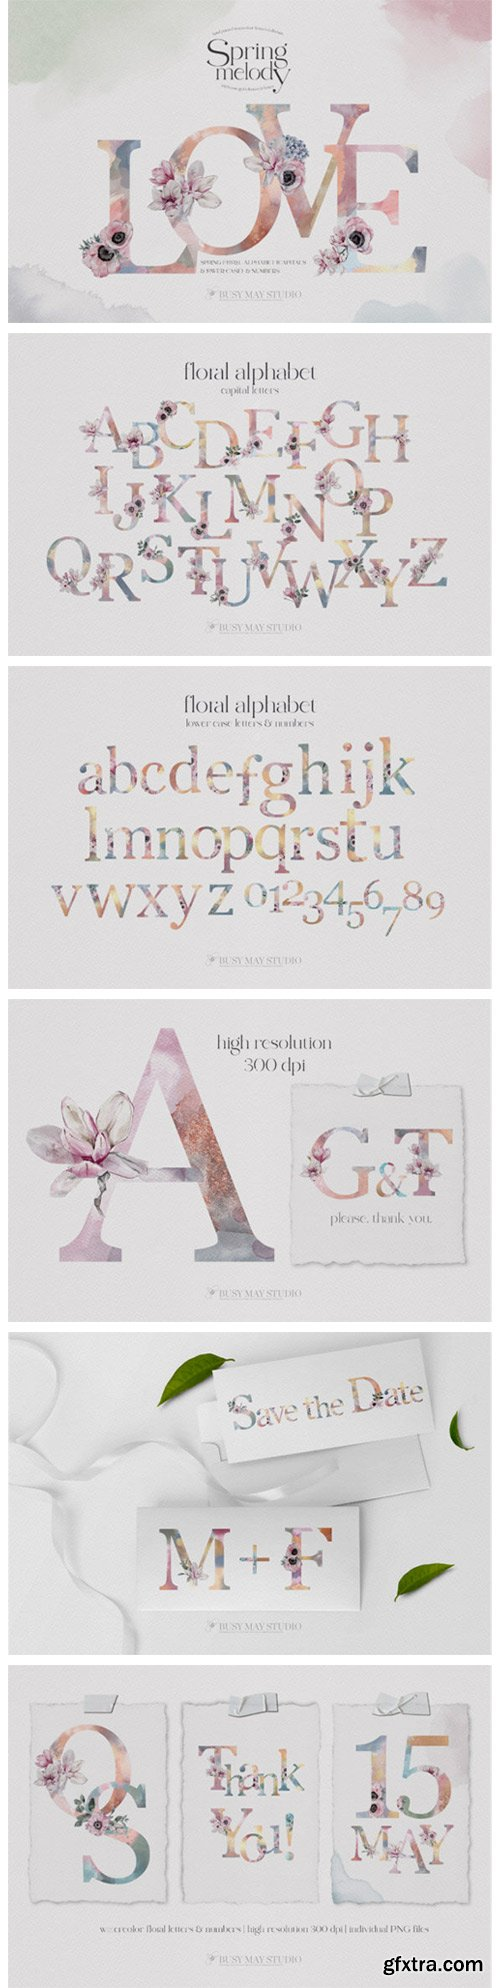 Watercolor Floral Alphabet Numbers PNG 7635111